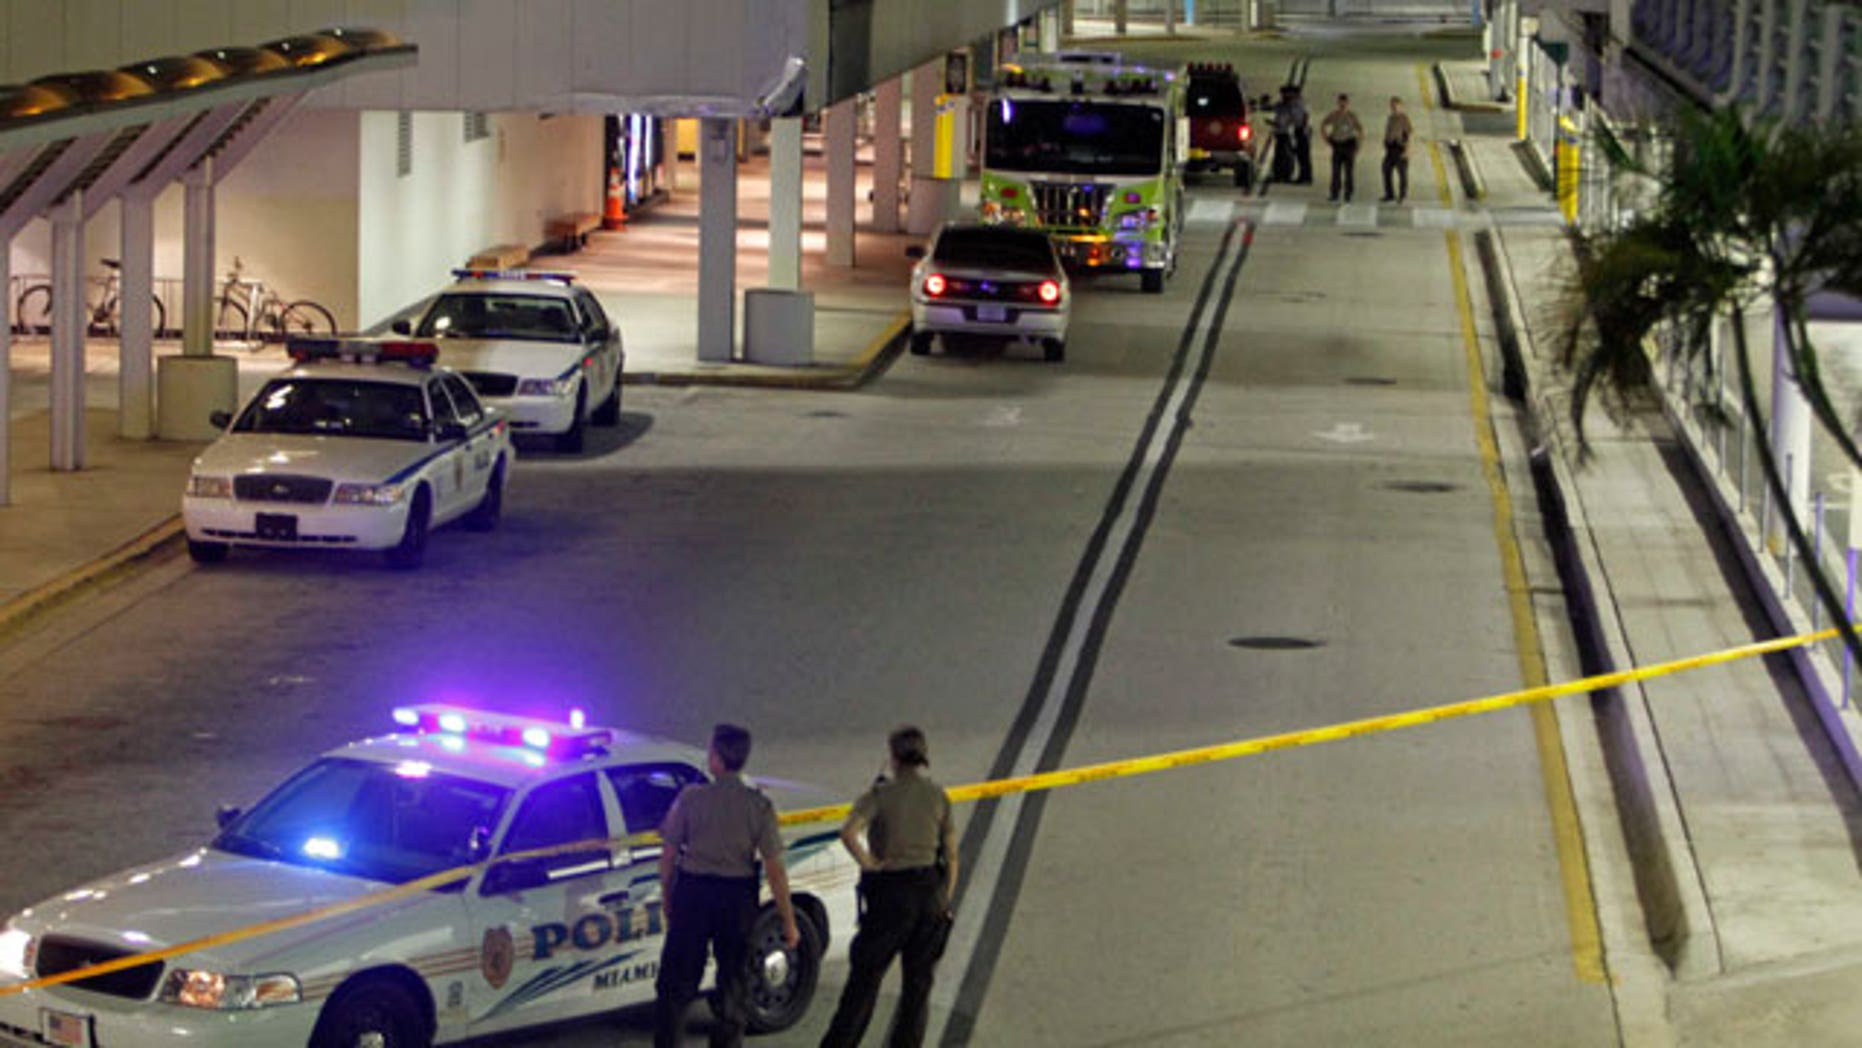 A Miami-Dade Police and Fire Rescue officers are seen on the arrival level at Miami International Airport in Miami, early morning Friday, Sept. 3, 2010. A spokesman for Miami International Airport says four of its six concourses have been evacuated as a police bomb squad investigates a report of a suspicious item. Several flights were diverted to other parts of the terminal.